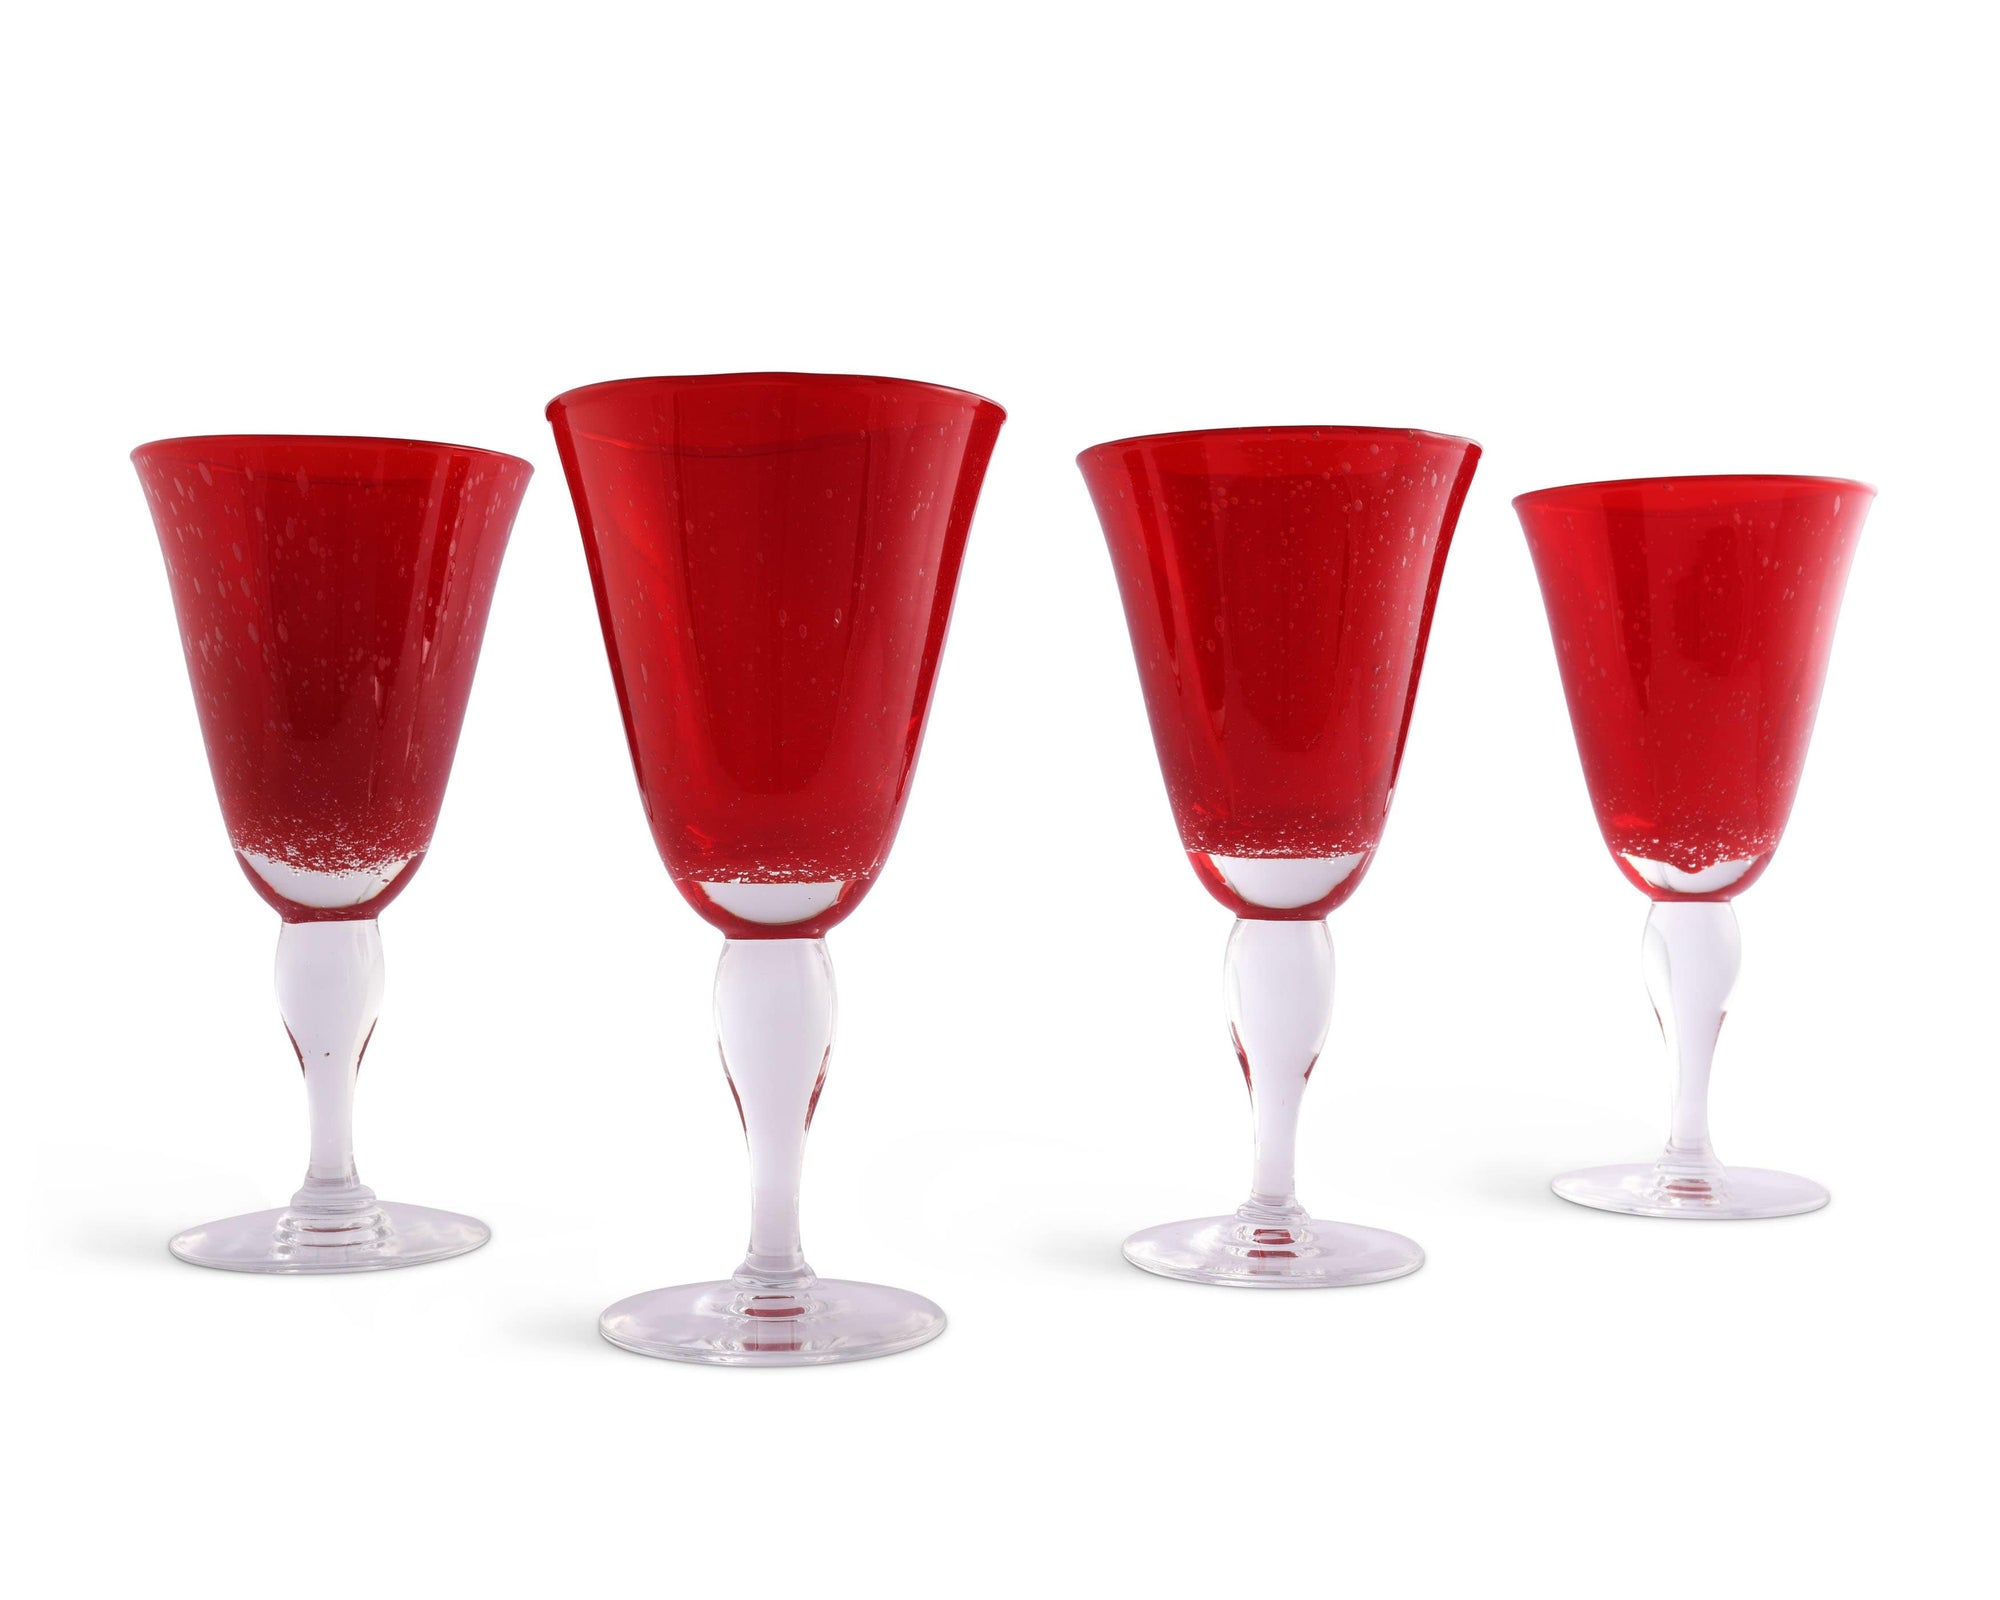 Vagabond House Hand Blown Glassware Illusion Water Glass - Red- Set of 4